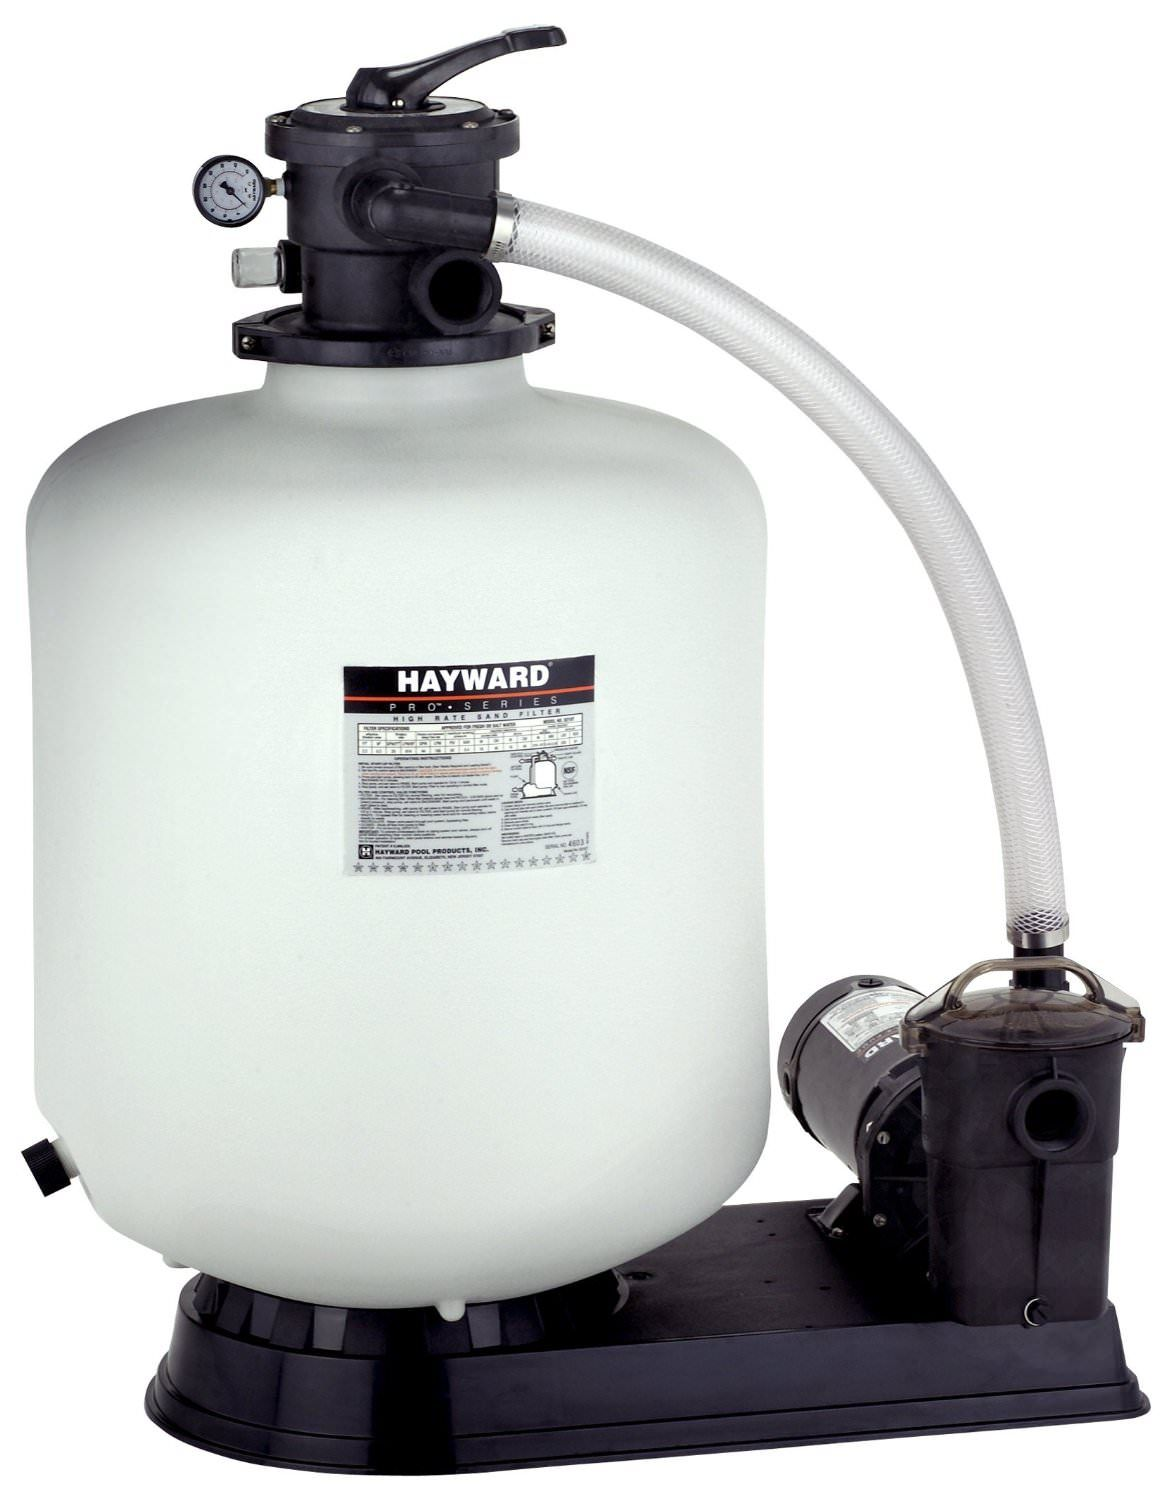 Hayward Pro Series Above Ground Pool 21 inch Sand Filter w/ 1.5 HP Pump